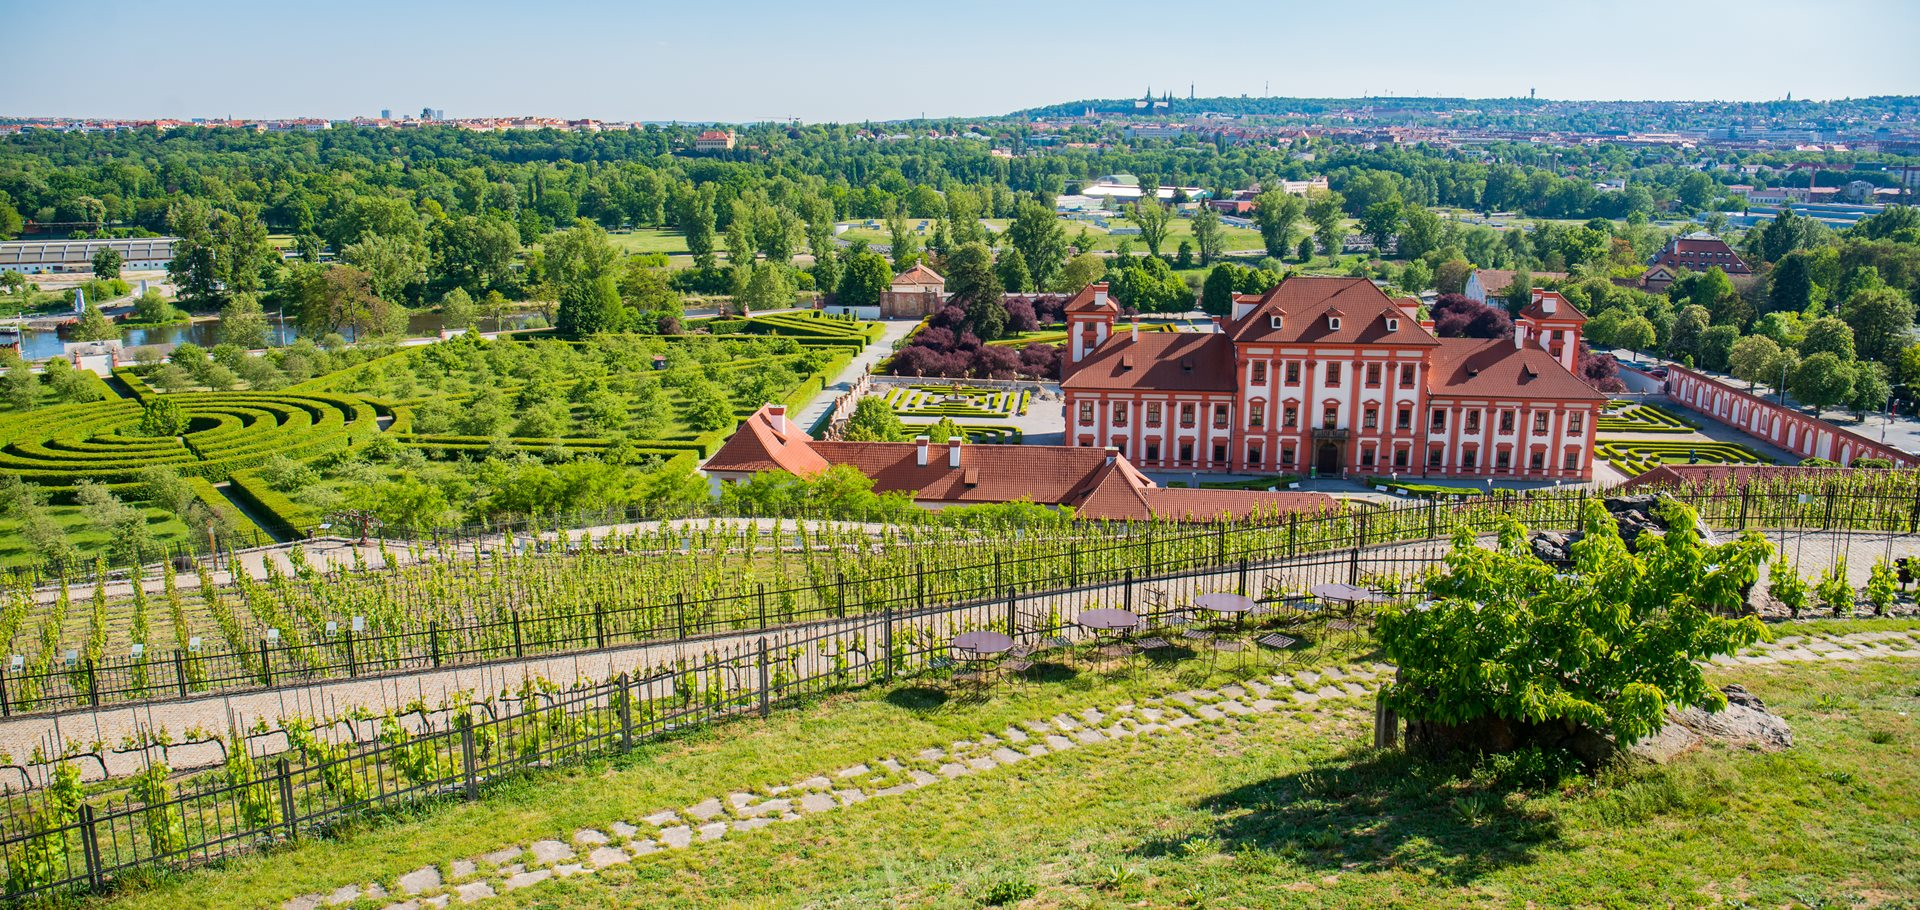 Prague has one of the largest share of greenness in the world